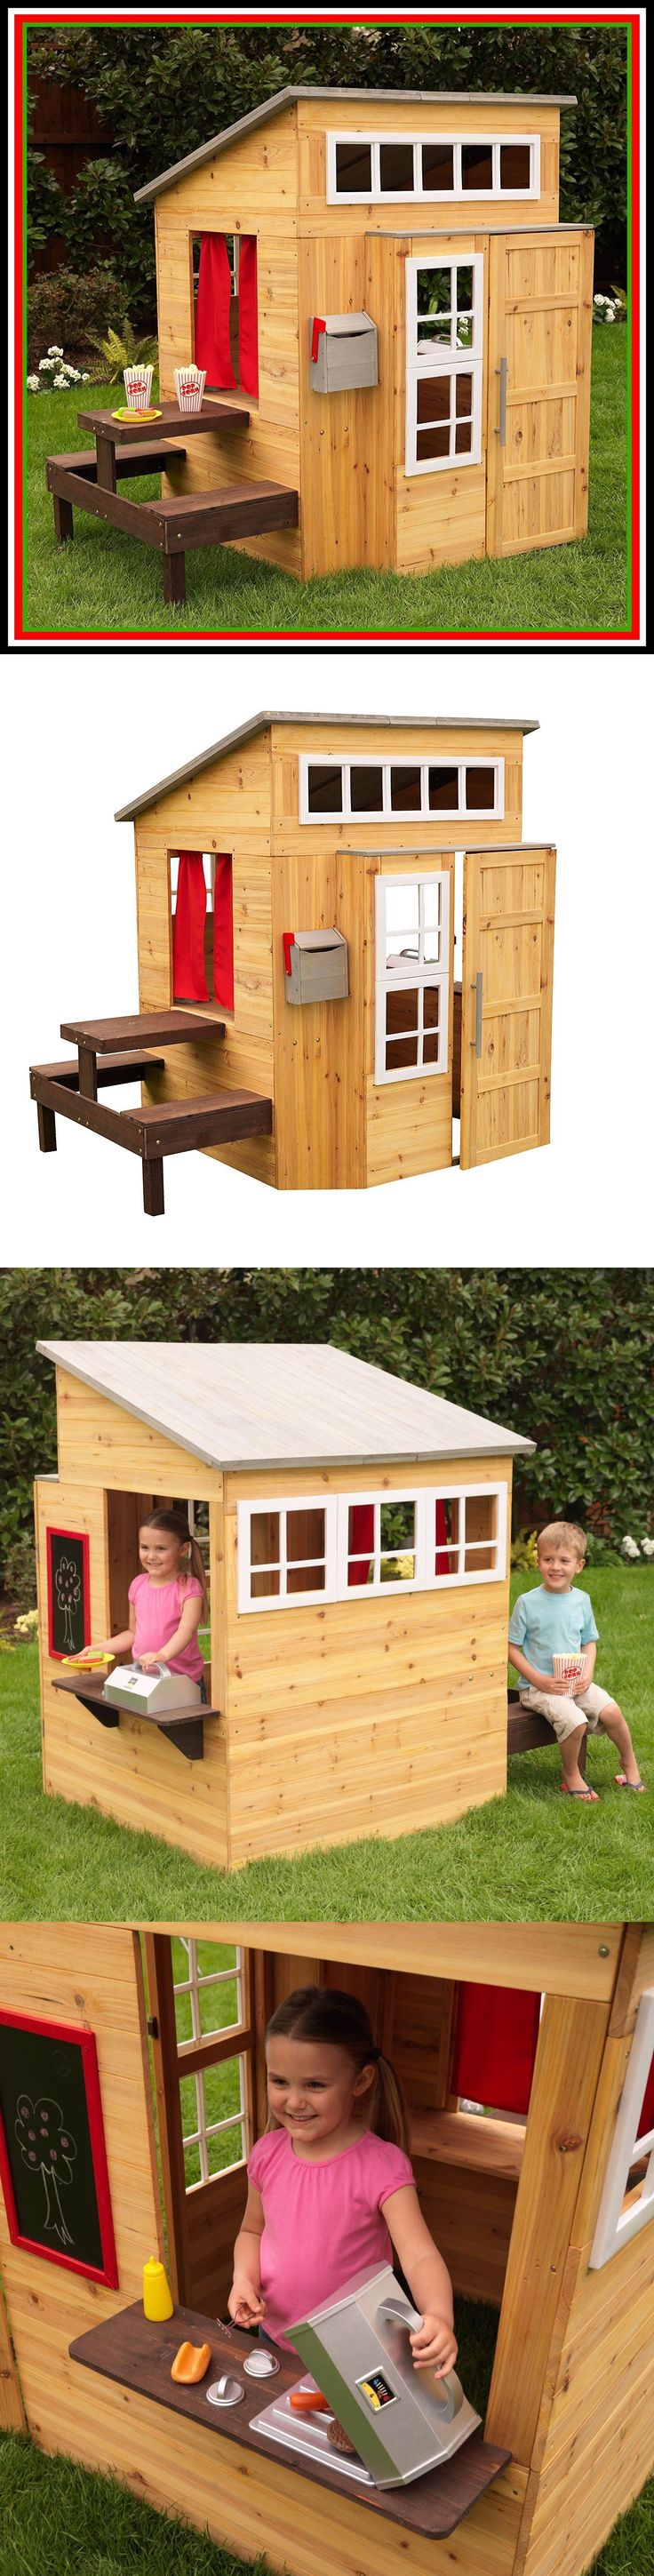 Permanent Playhouses 145995: Wooden Playhouse Outdoor Kids Boys Kidkraft Outside Backyard Tiny House Sale -> BUY IT NOW ONLY: $599.95 on eBay!